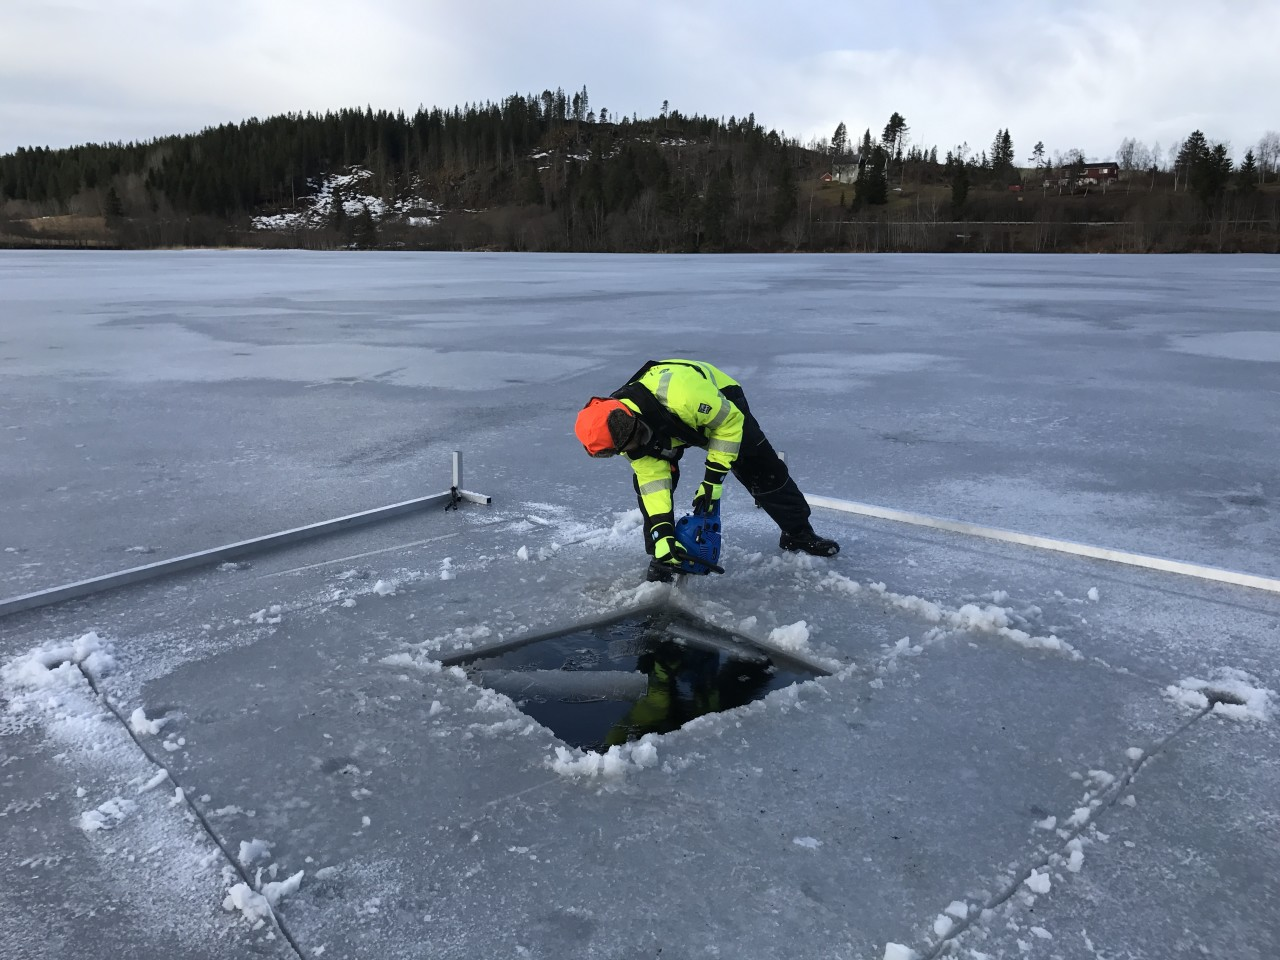 Making of the hole in the ice using chain saw